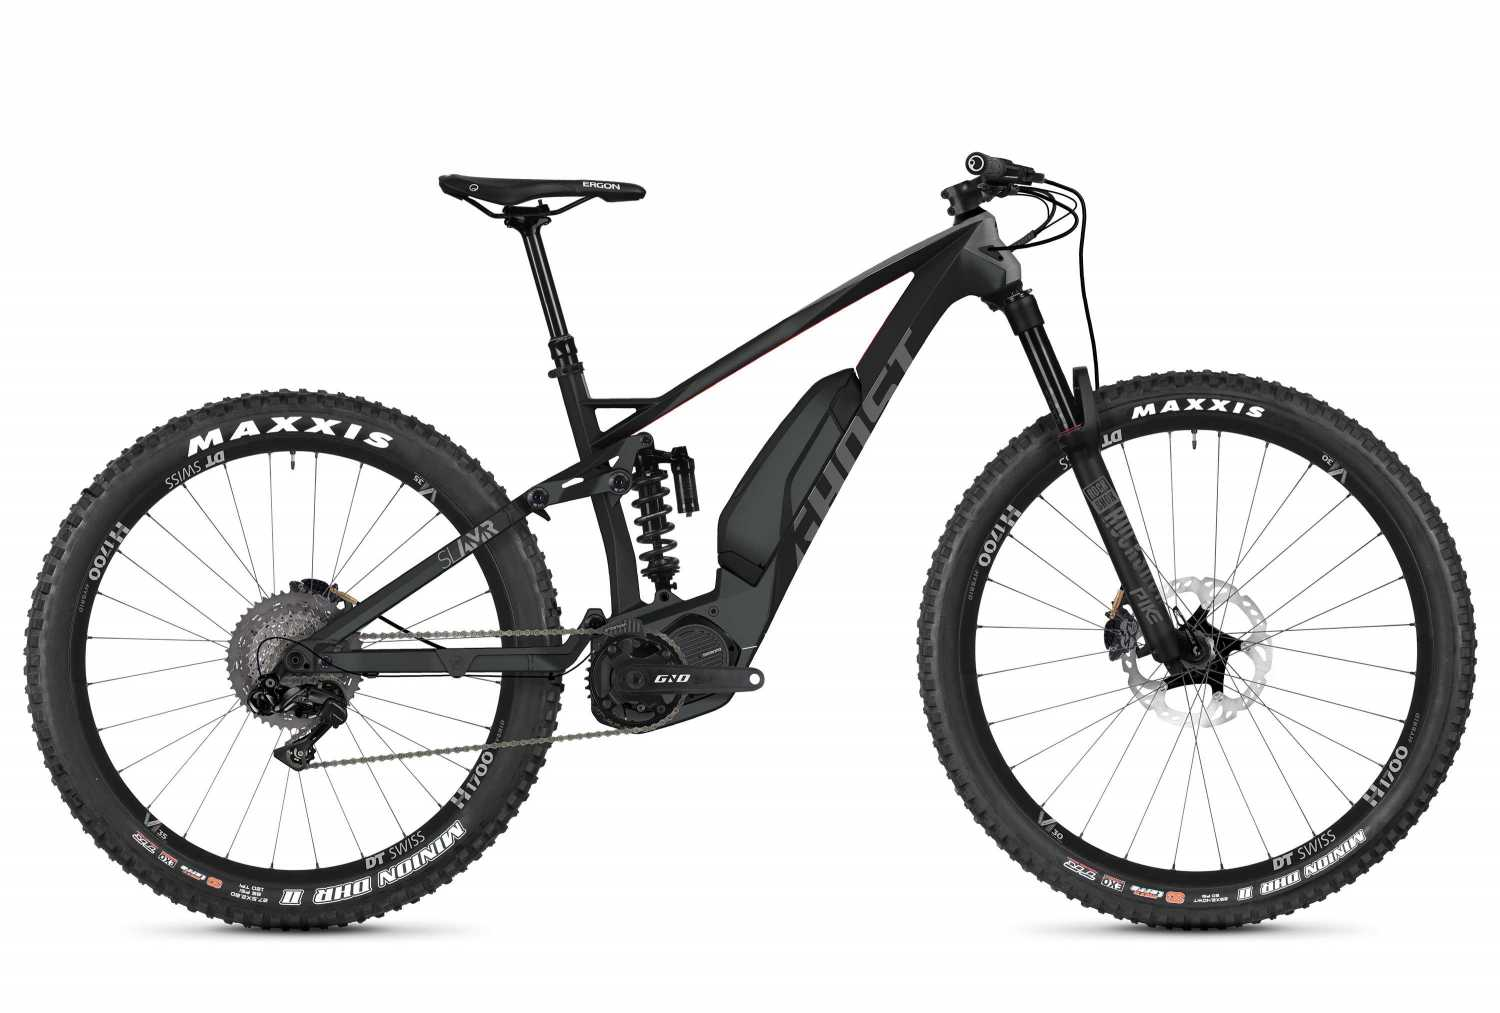 GHOST HybRide SL AMR S 8.7+ LC